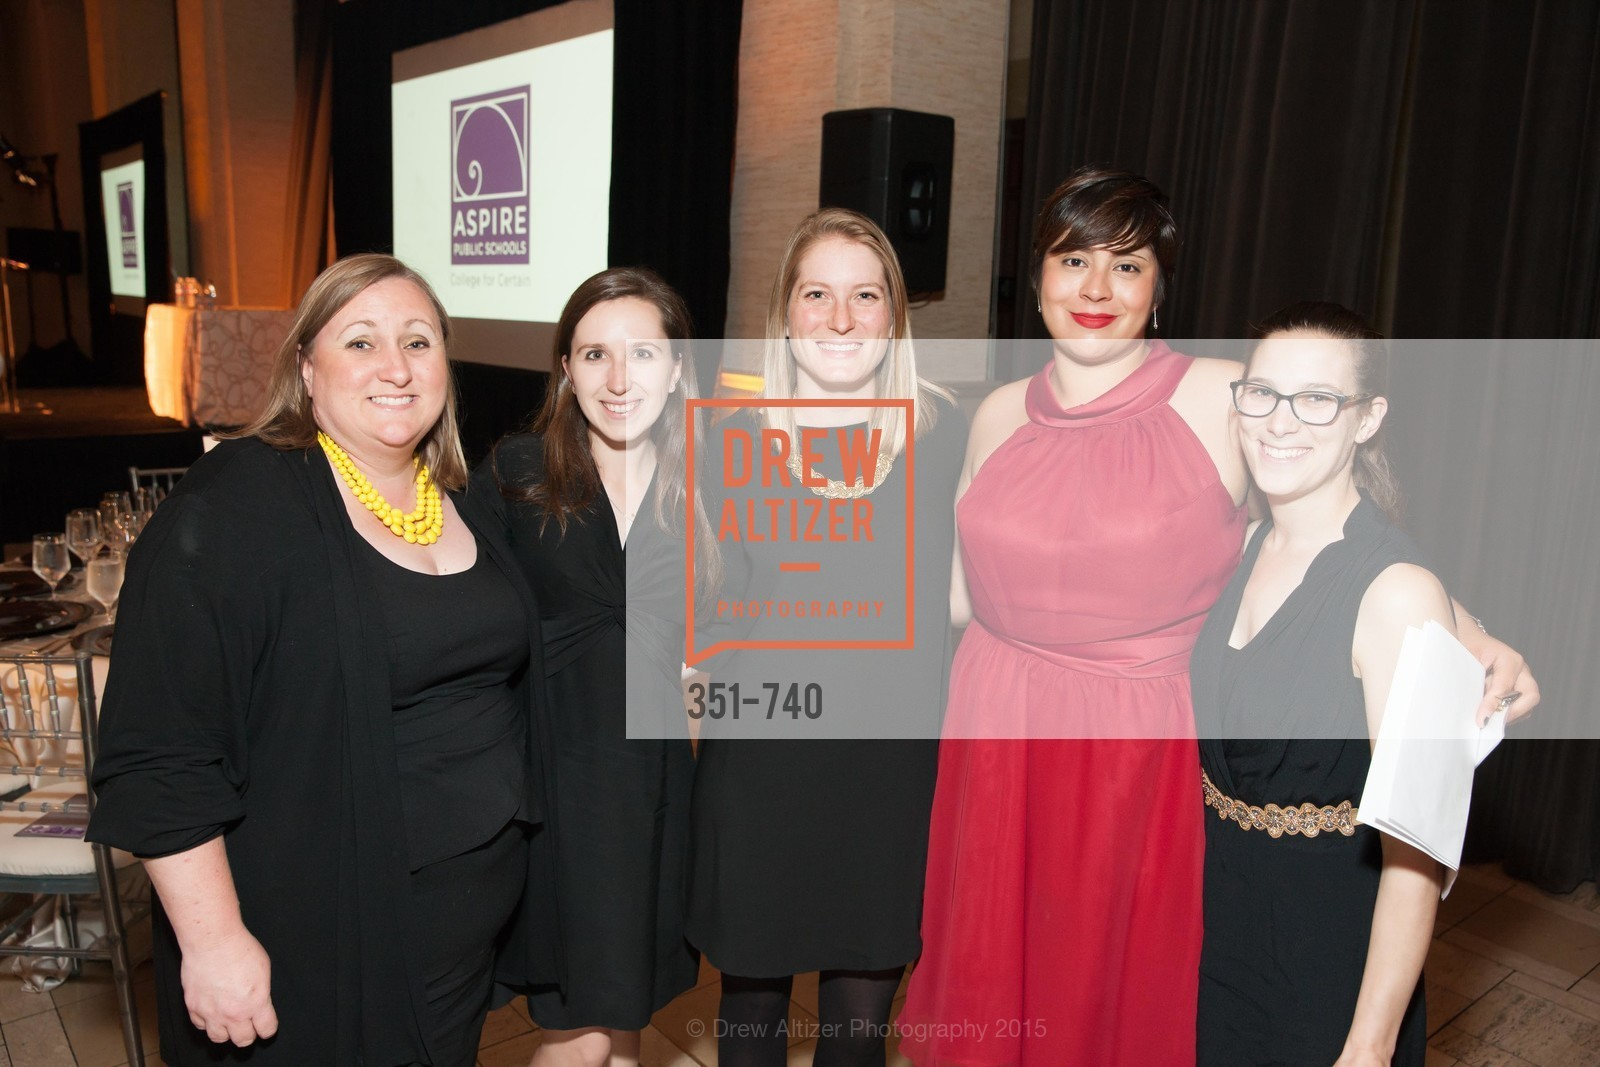 Sharon Johnson, Kate Barber, Devon Brown, Bianka Mariscal, Hanna Carla Newman, Aspire Annual College for Certain Dinne, US, May 21st, 2015,Drew Altizer, Drew Altizer Photography, full-service agency, private events, San Francisco photographer, photographer california